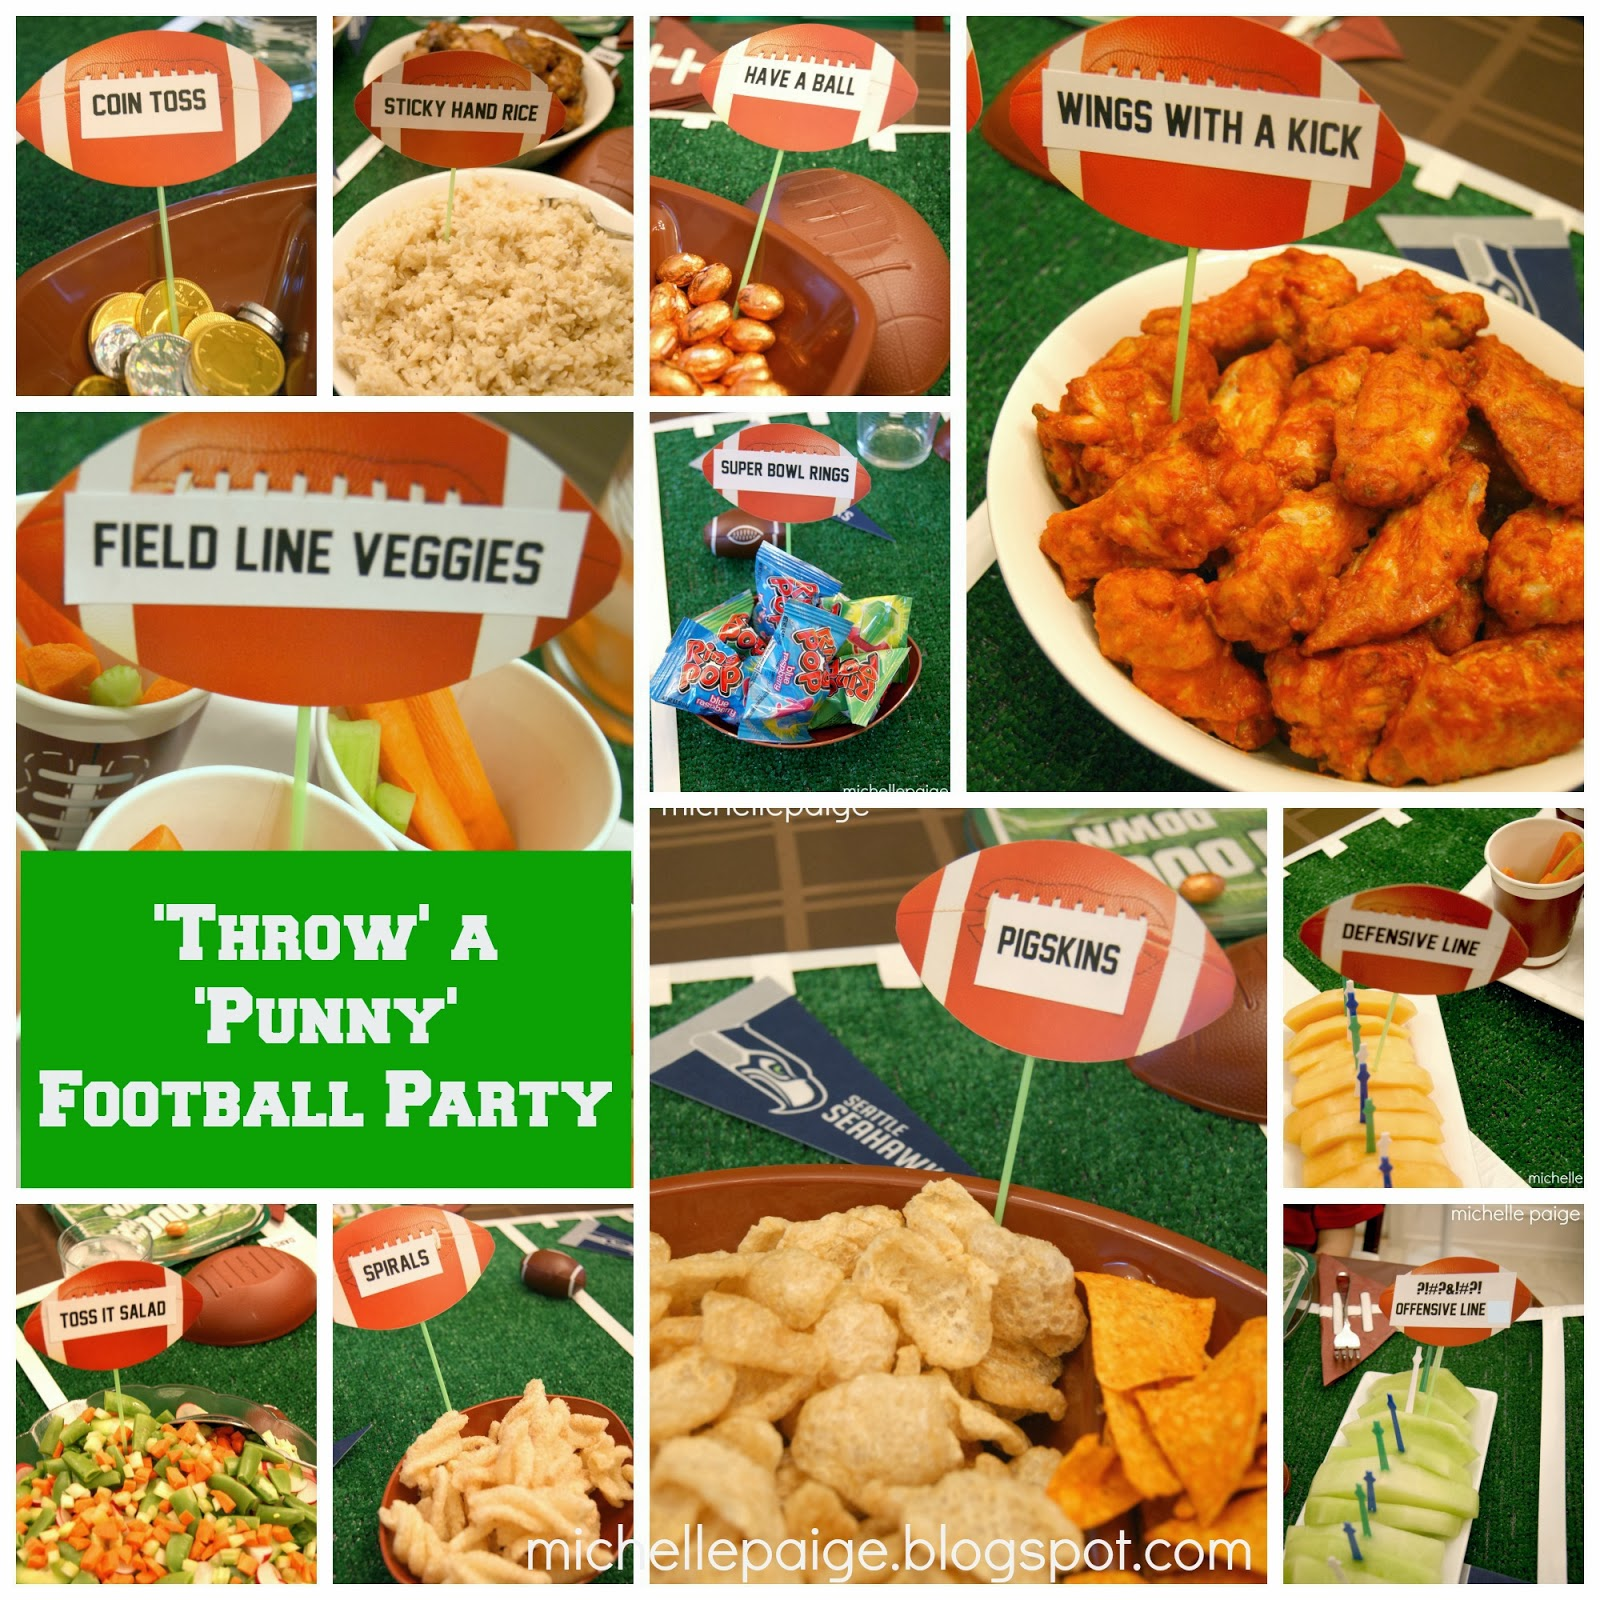 A Pun-Filled Football Party!